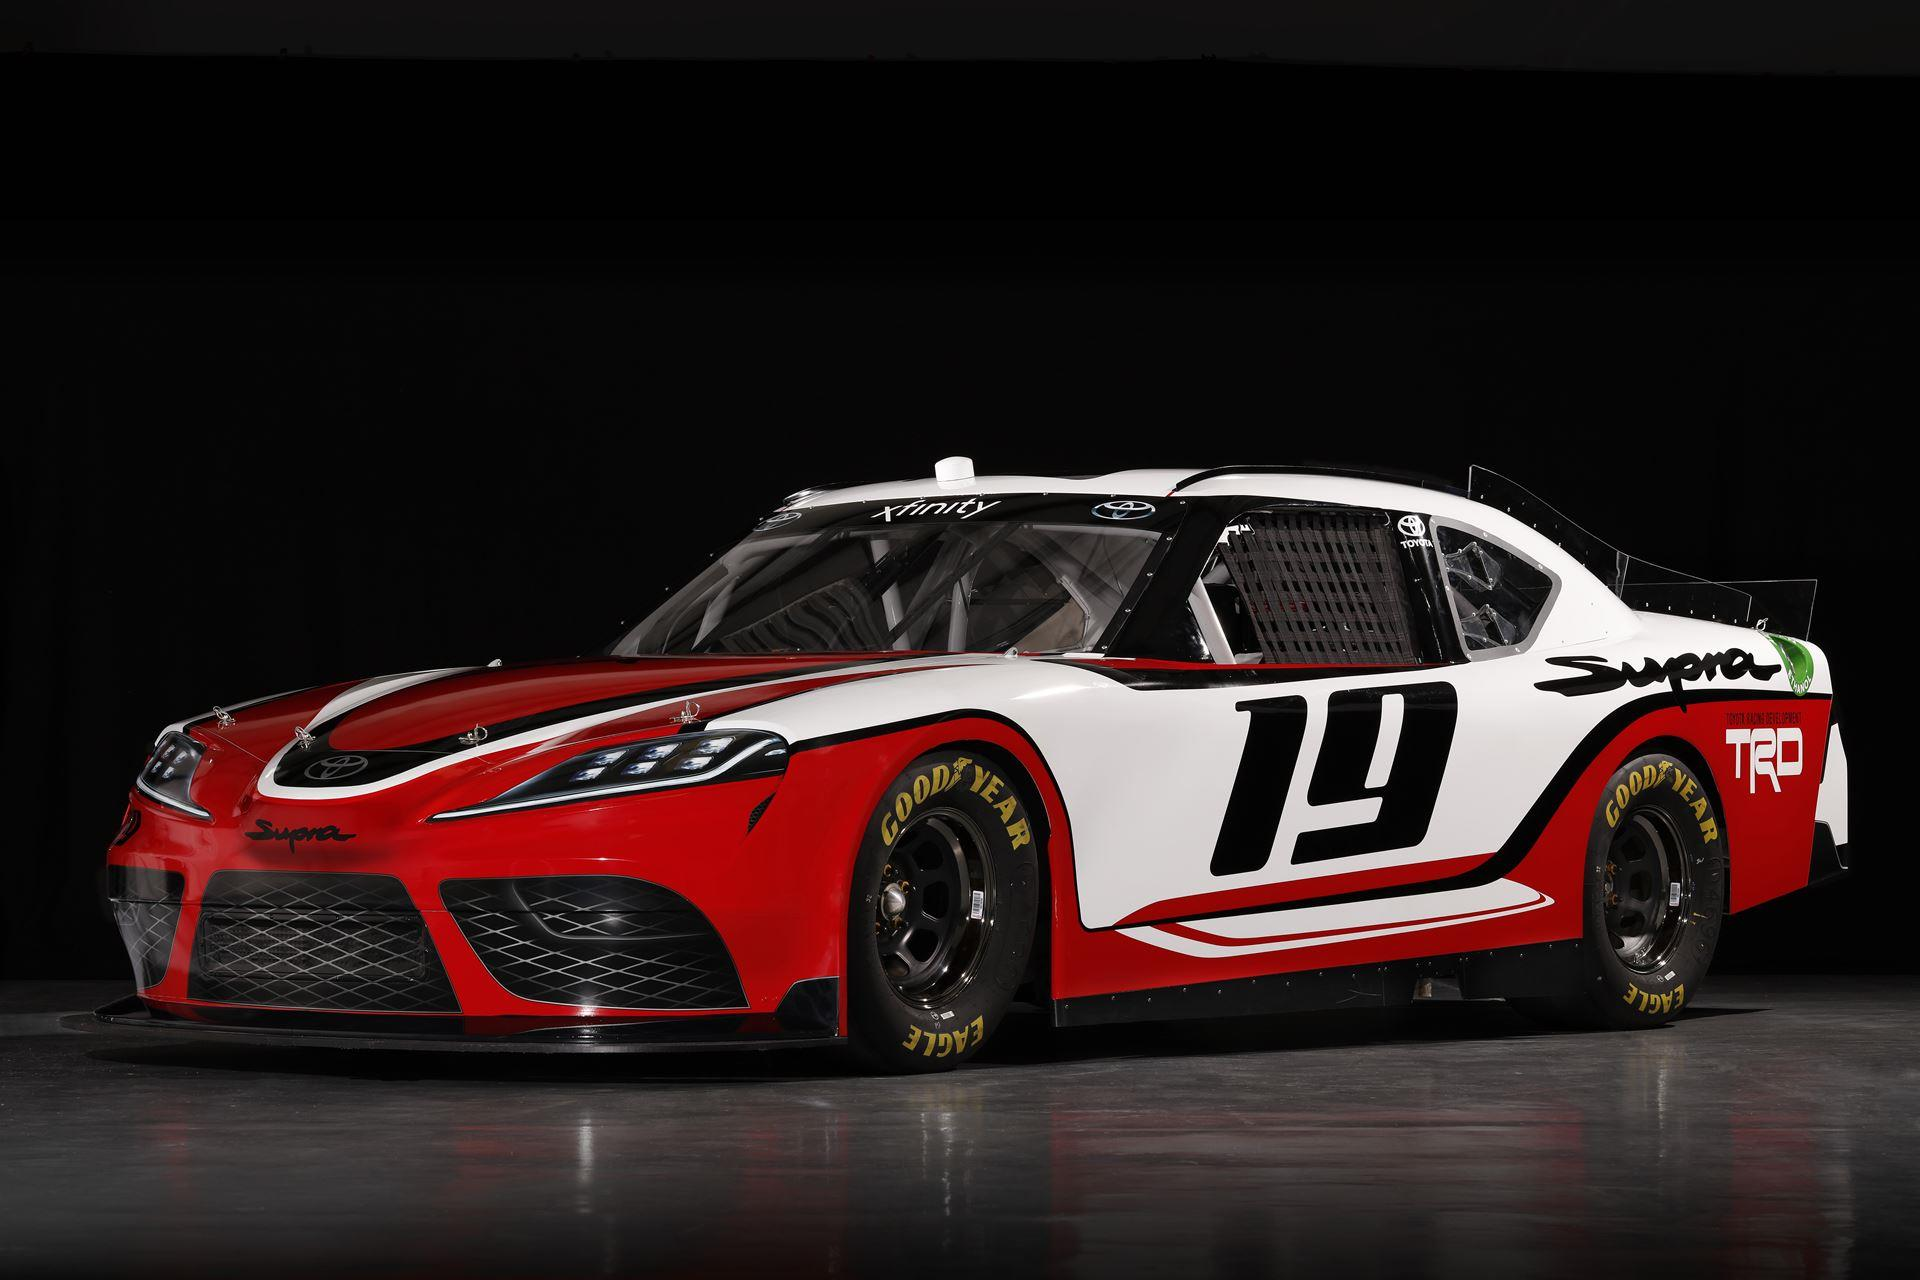 Wallpaper Toyota Supra Nascar Xfinity Series 2019 4k: 2018 Toyota Xfinity Supra News And Information, Research